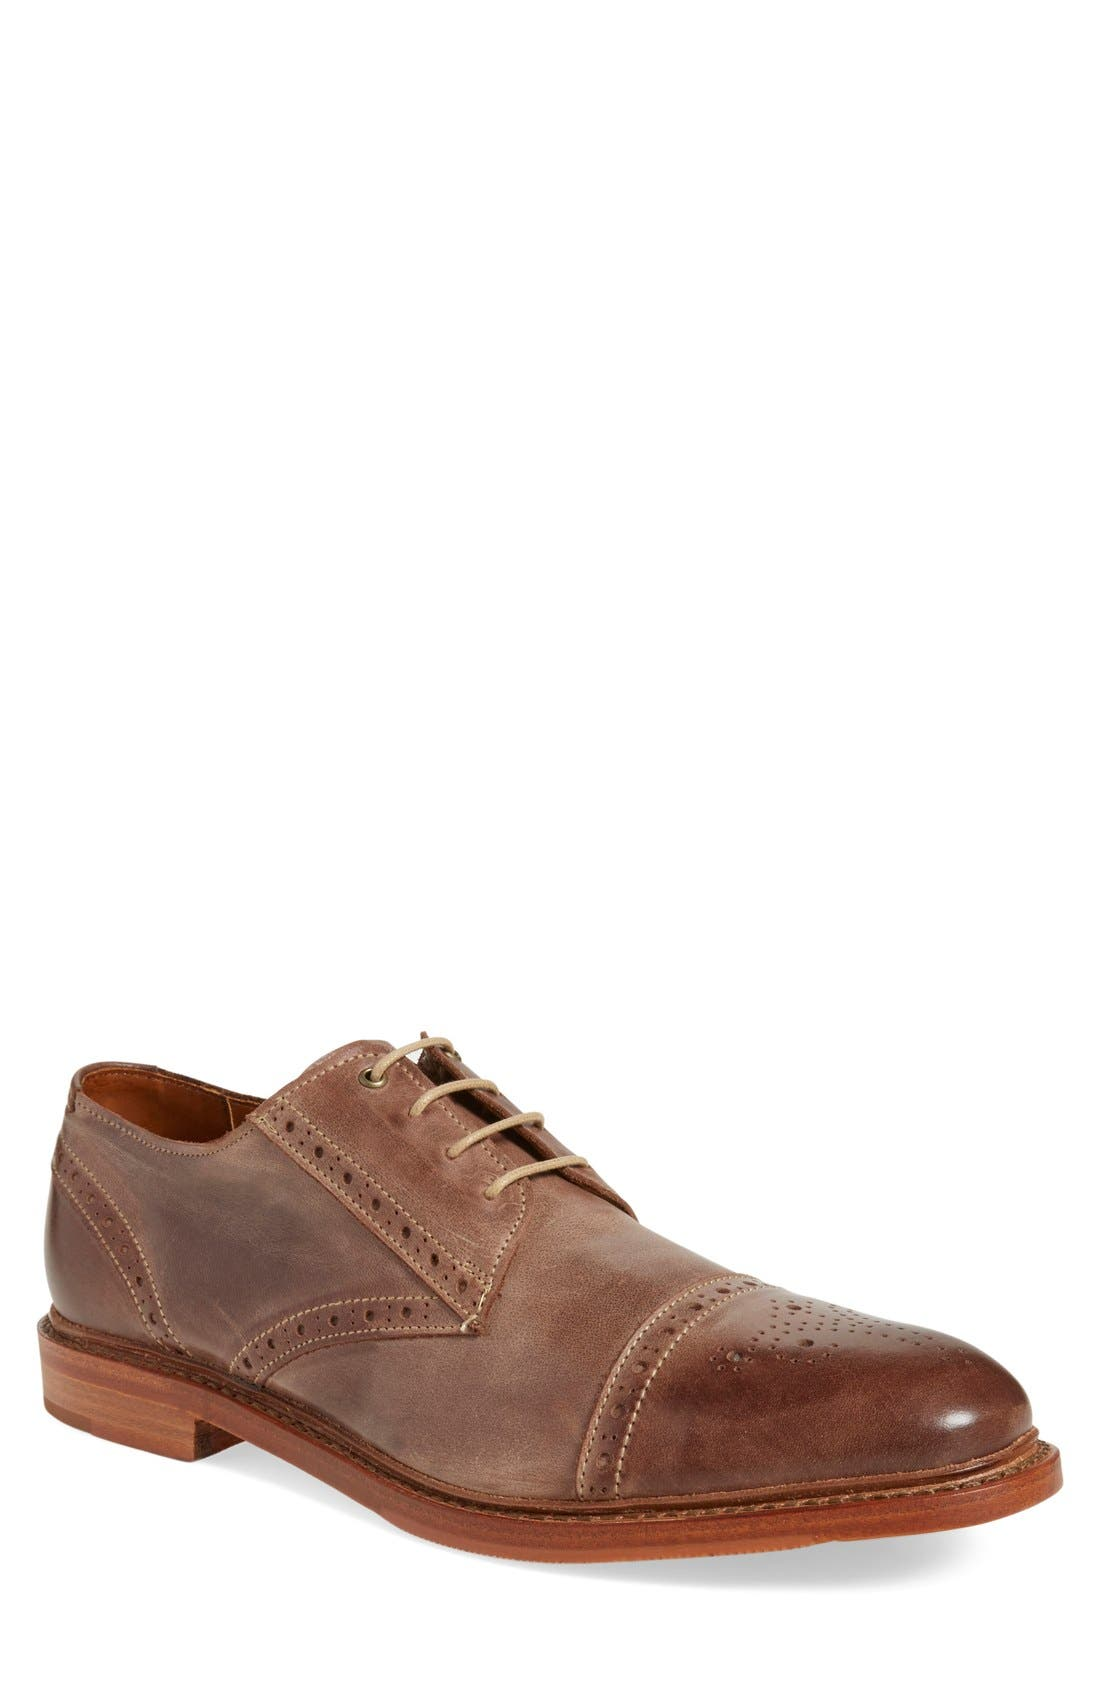 ALLEN EDMONDS 'Bainbridge' Cap Toe Derby